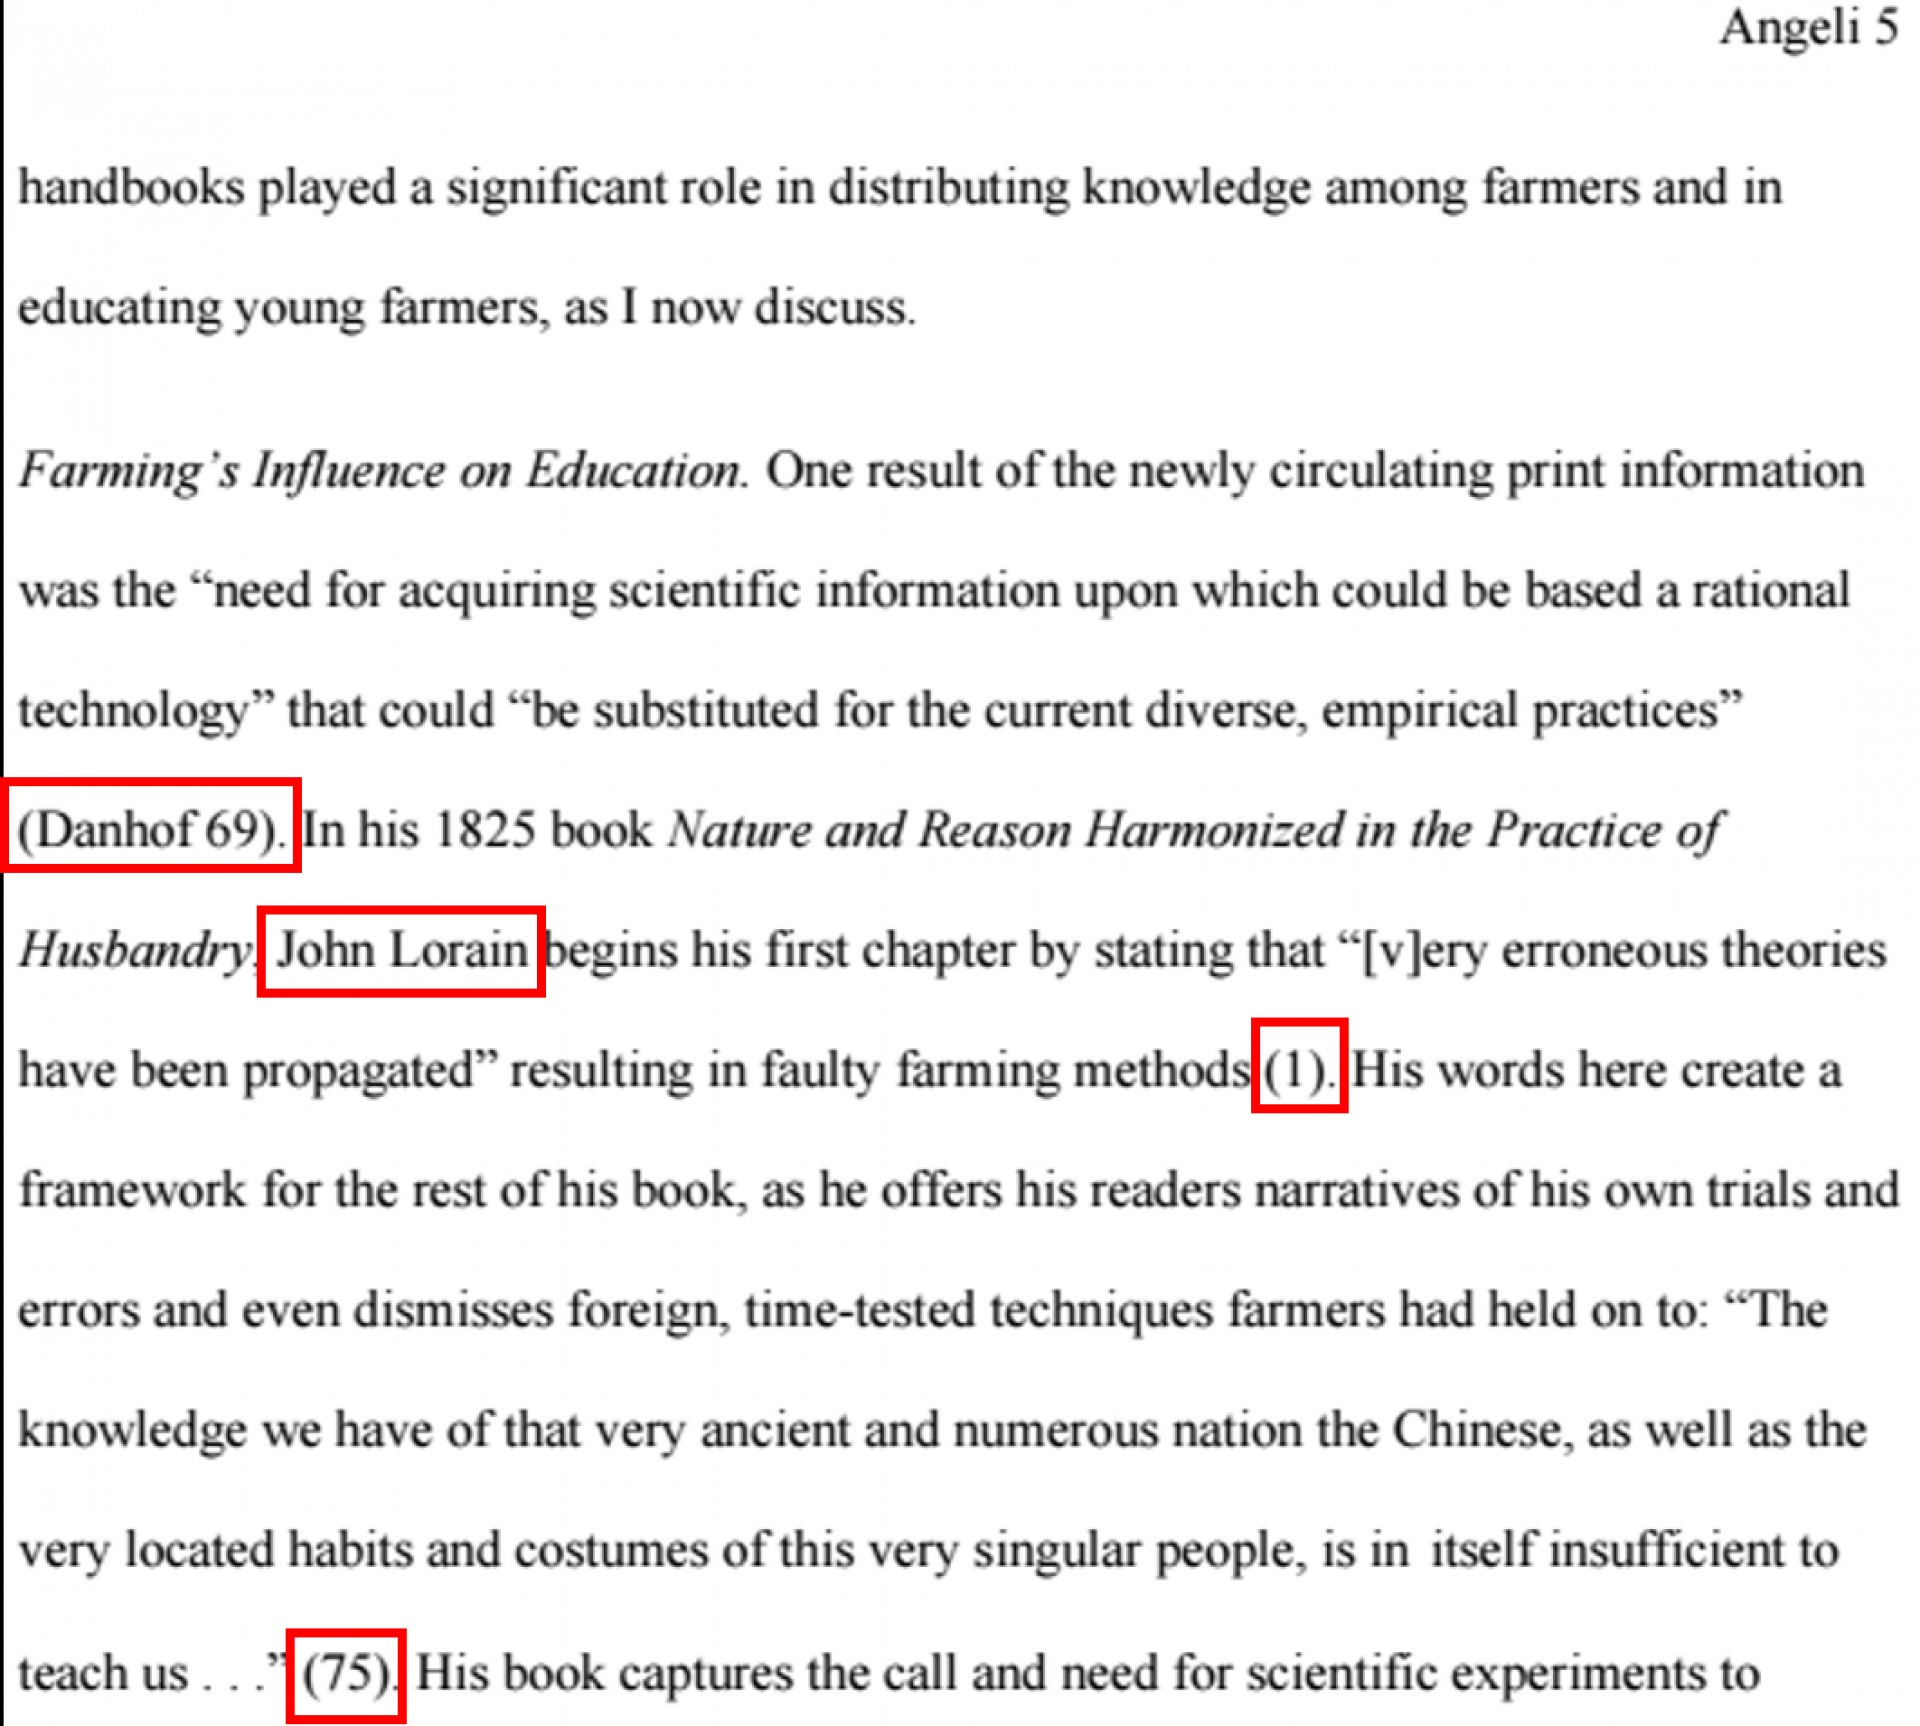 013 Citations In Research Paper Mla Awesome A Cite Style How To References Citing Website Format 1920